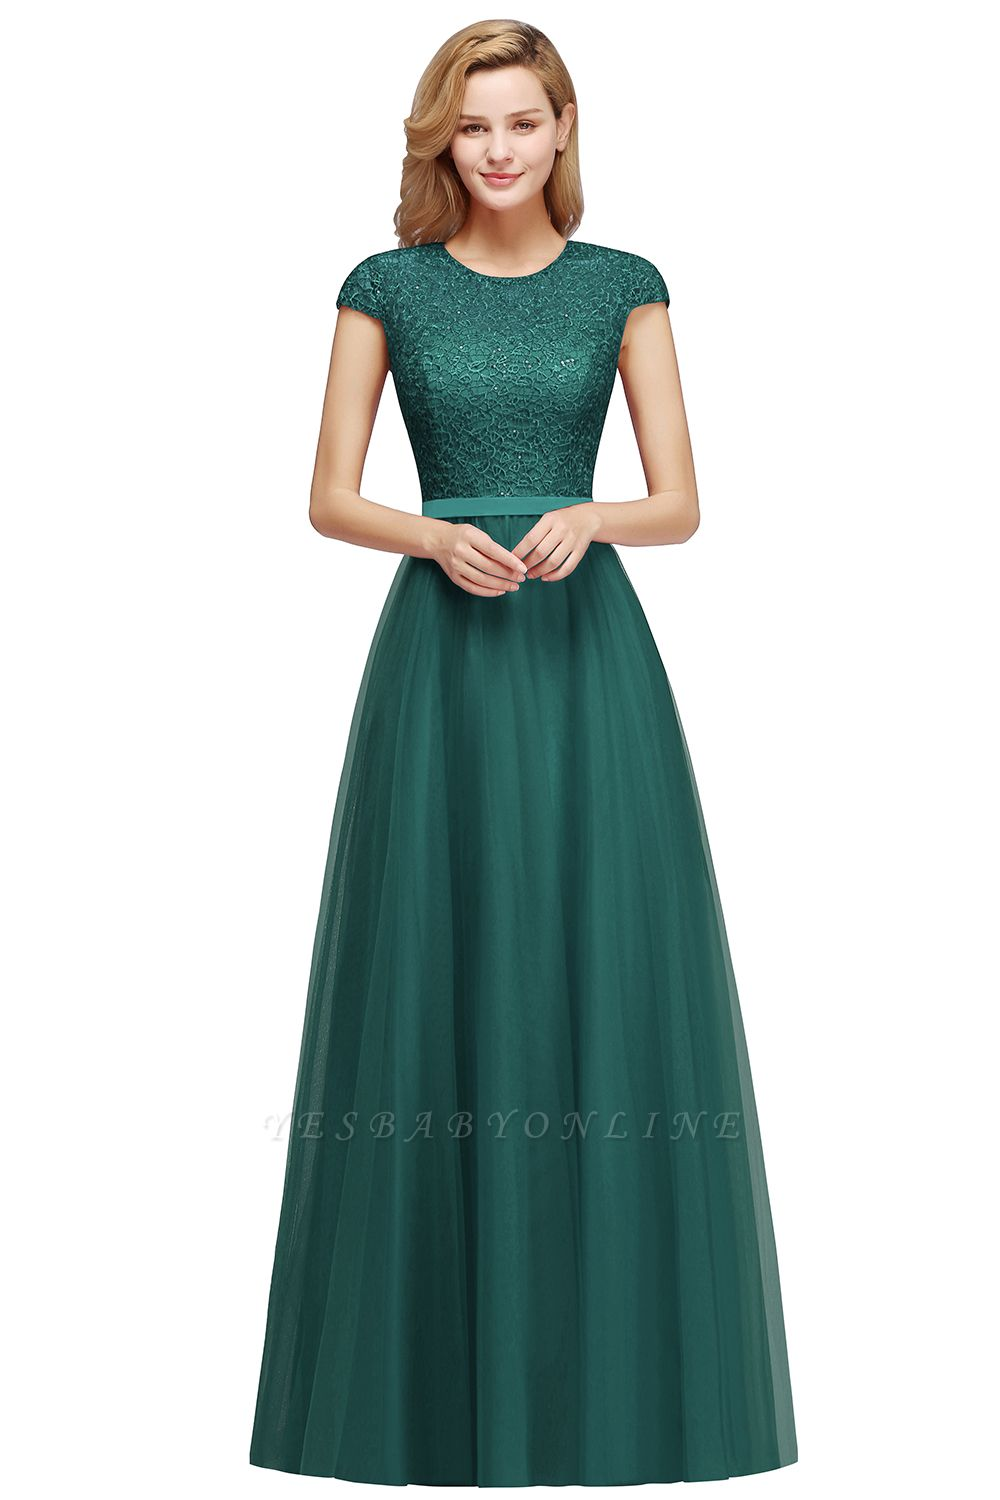 Elegant Cap Sleeves A-line Prom Dresses | Cheap Long Lace Evening Gown